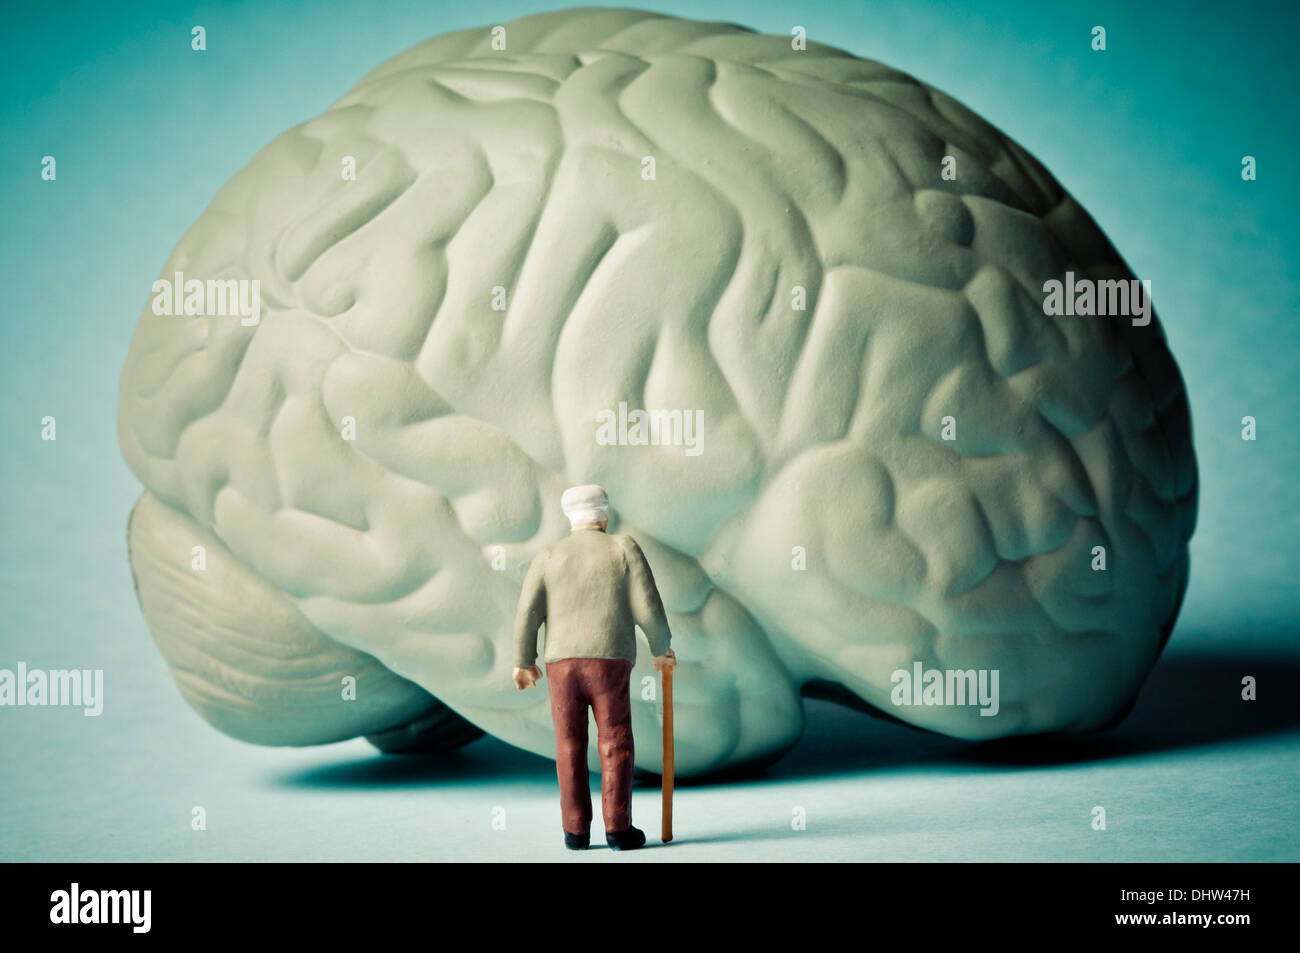 Alzheimer and mind aging concept - Stock Image